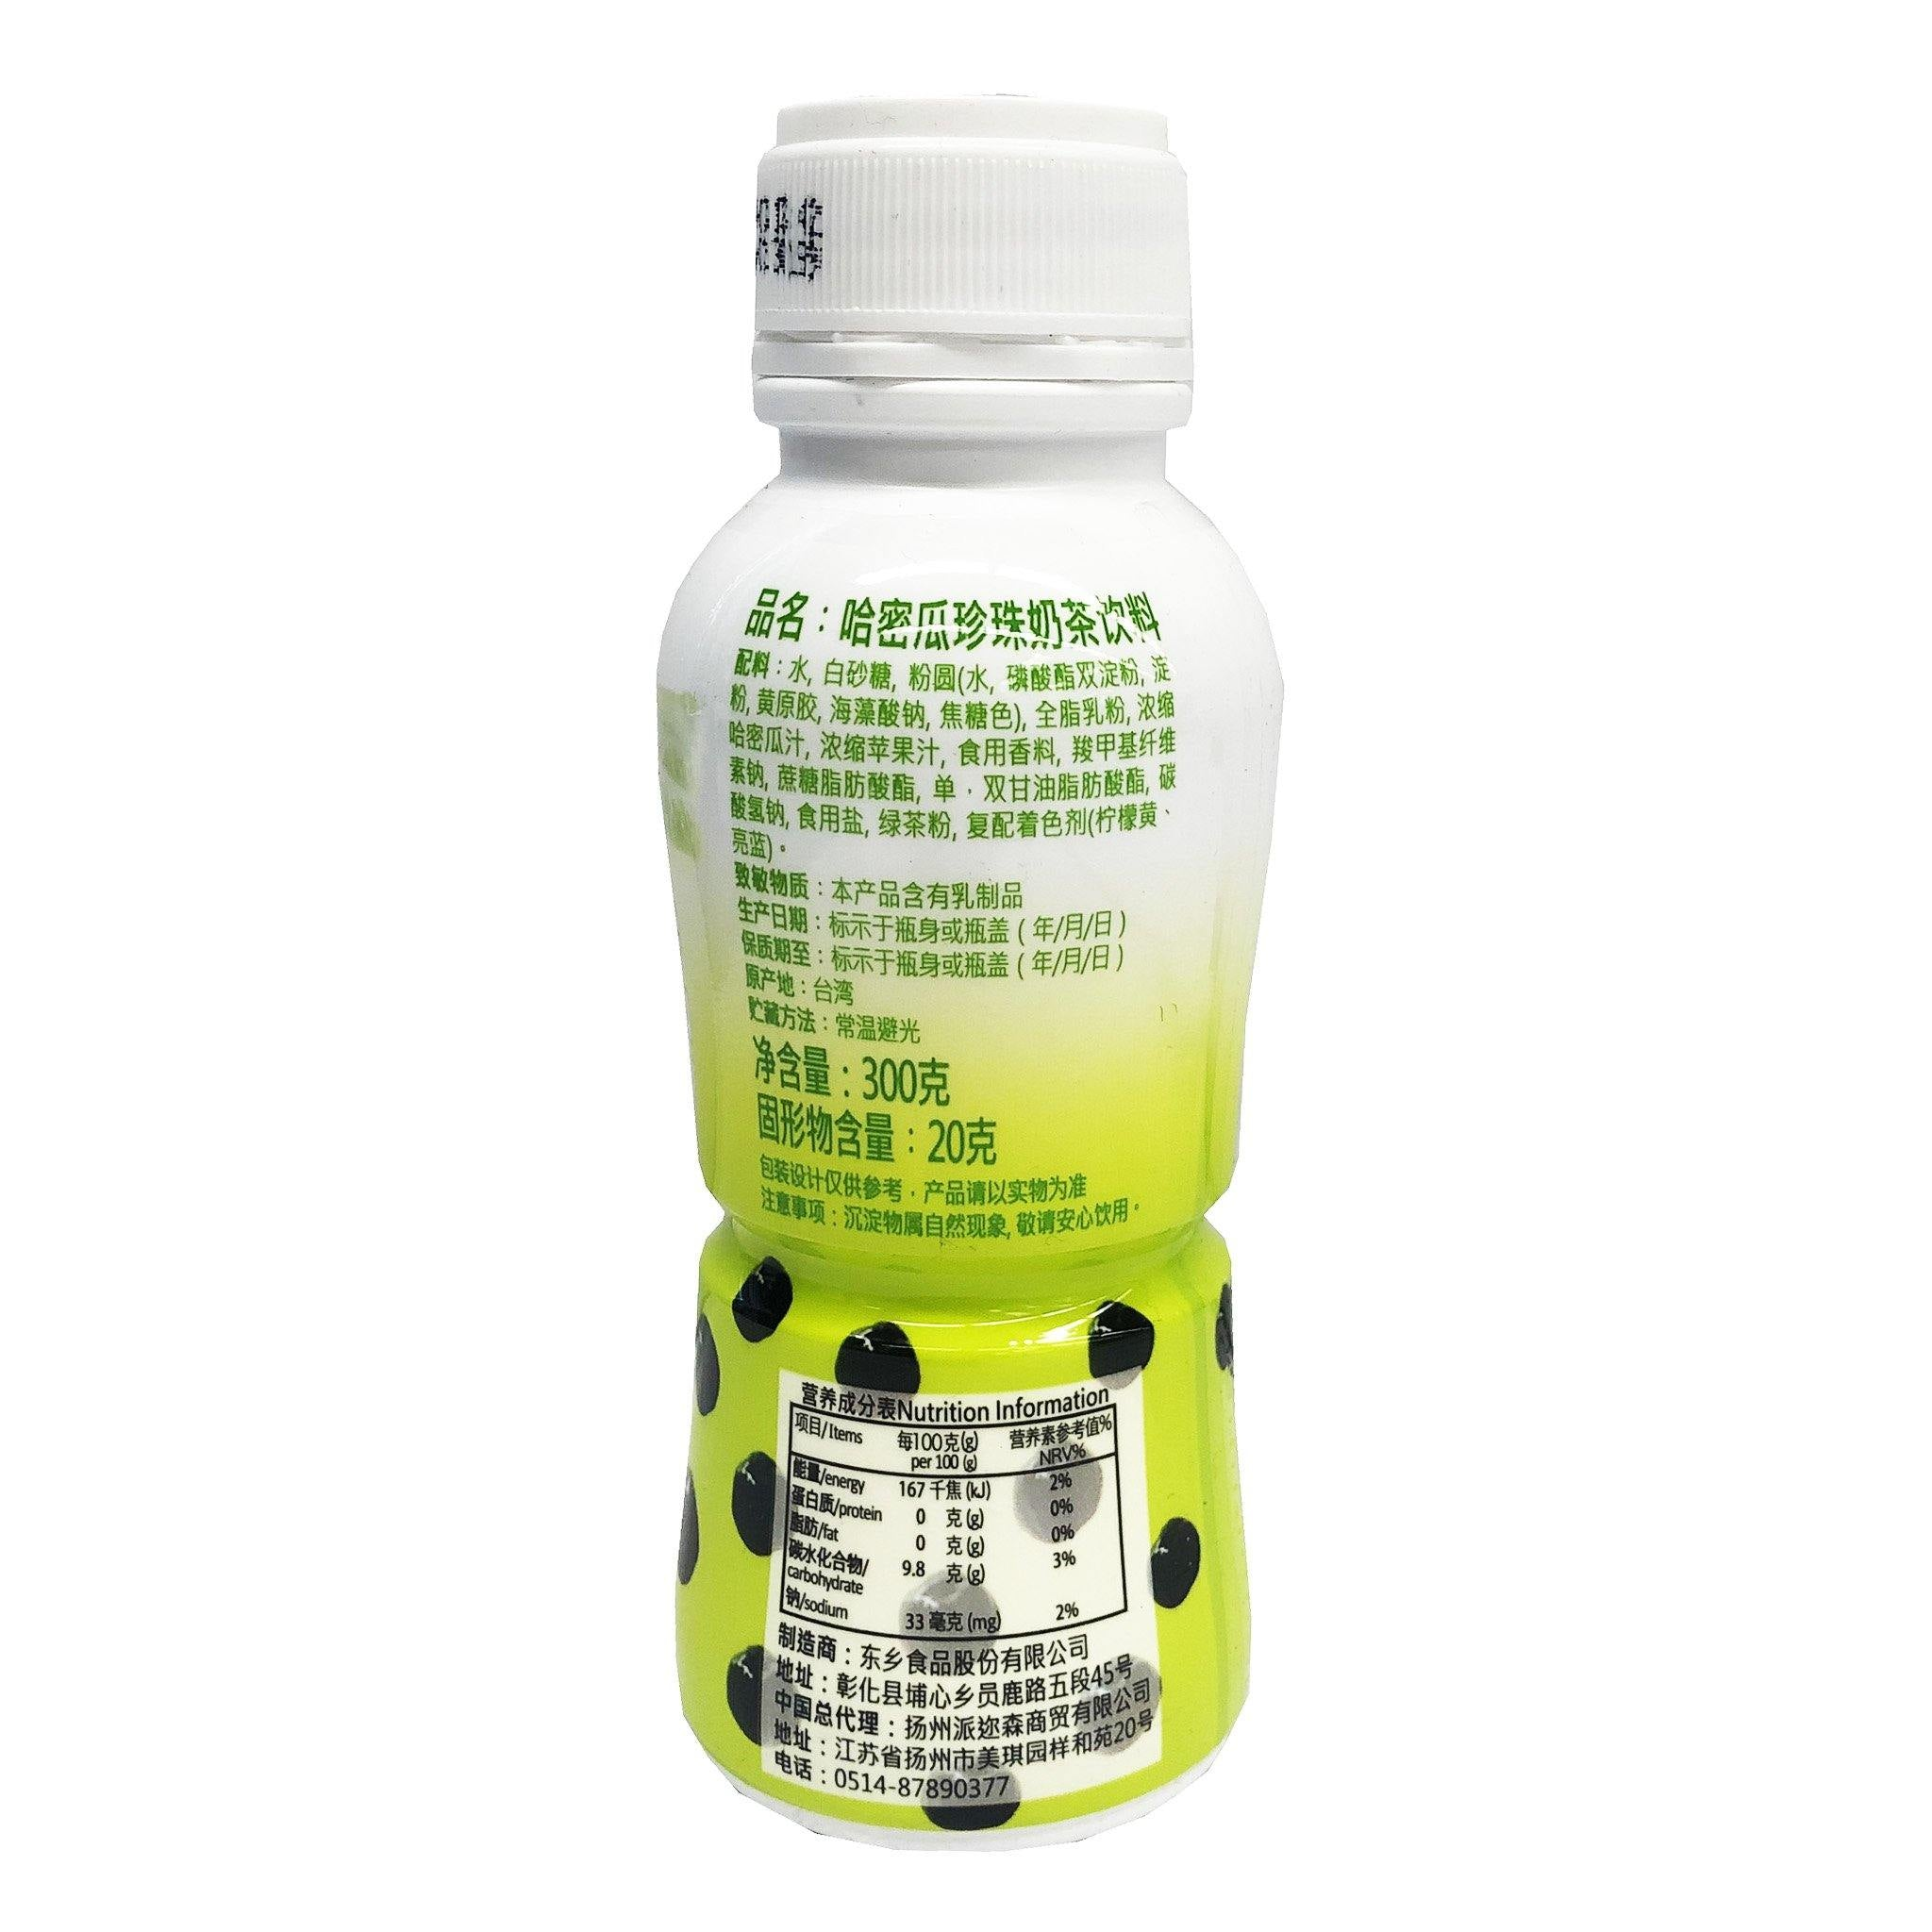 Rico Bubble Milk Tea Honeydew Flavor Drink 10.6 Oz (300 g) - 红牌哈密瓜味珍珠奶茶饮料 10.6 Oz (300 g)